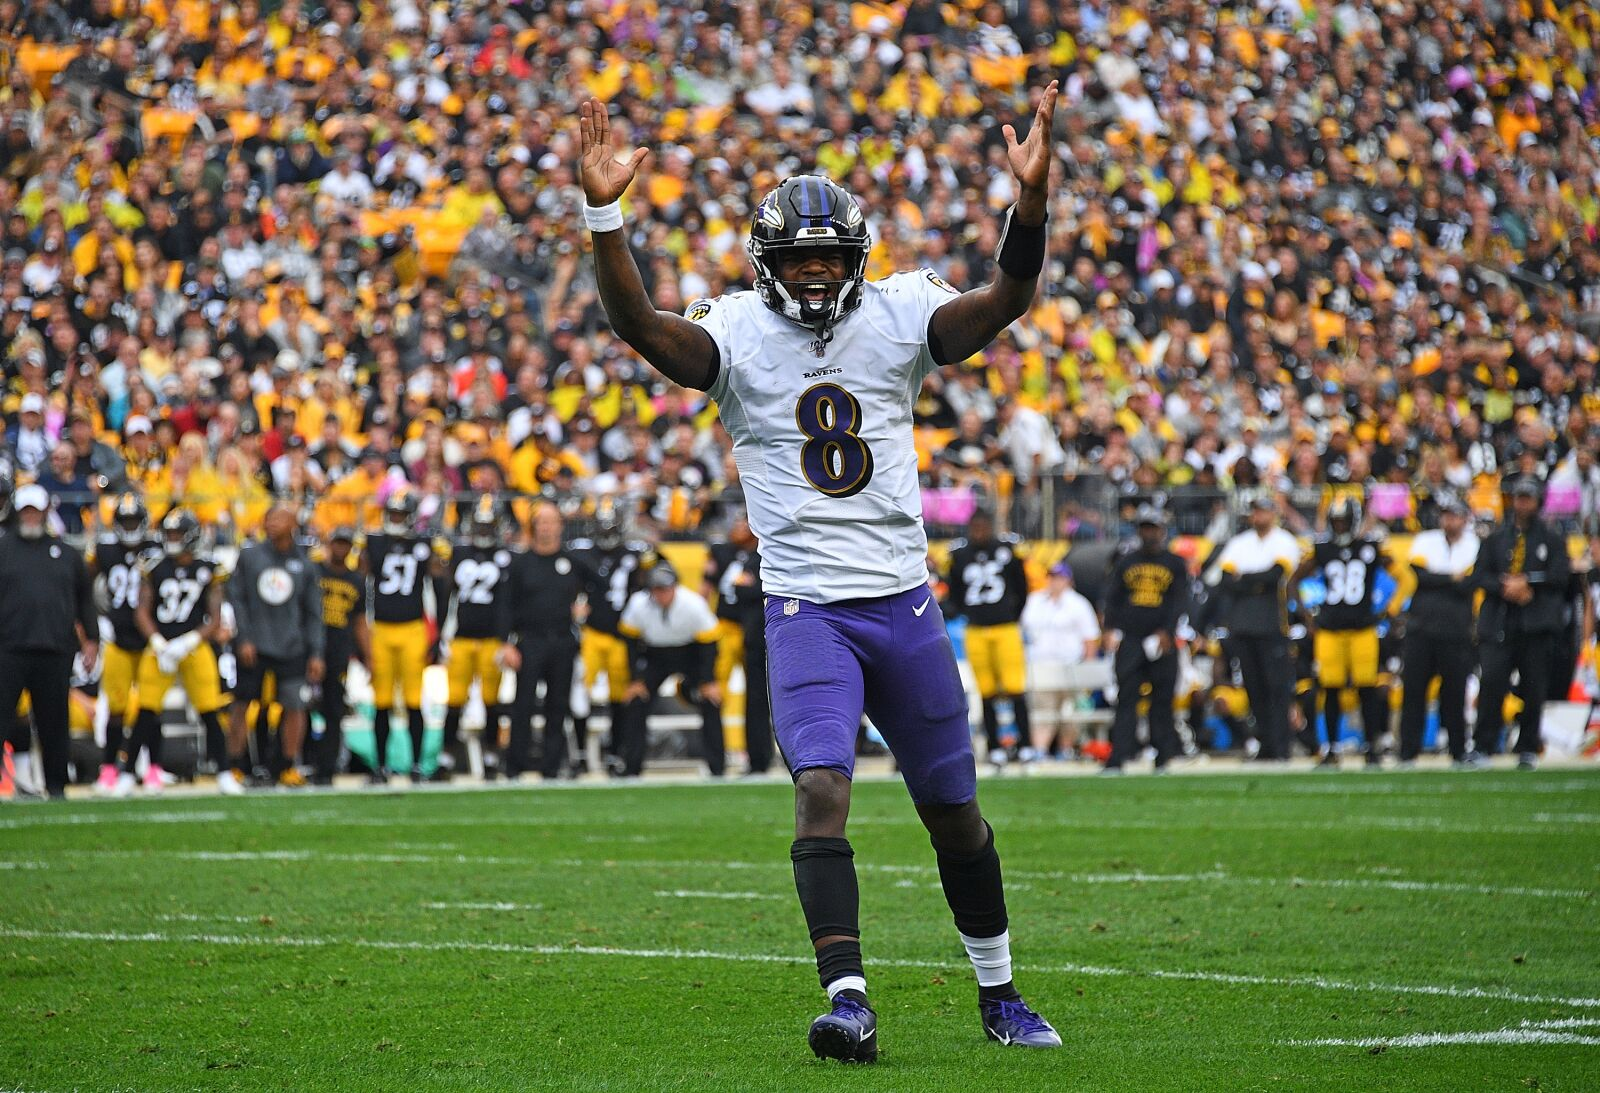 The Baltimore Ravens are perched atop the AFC North throne